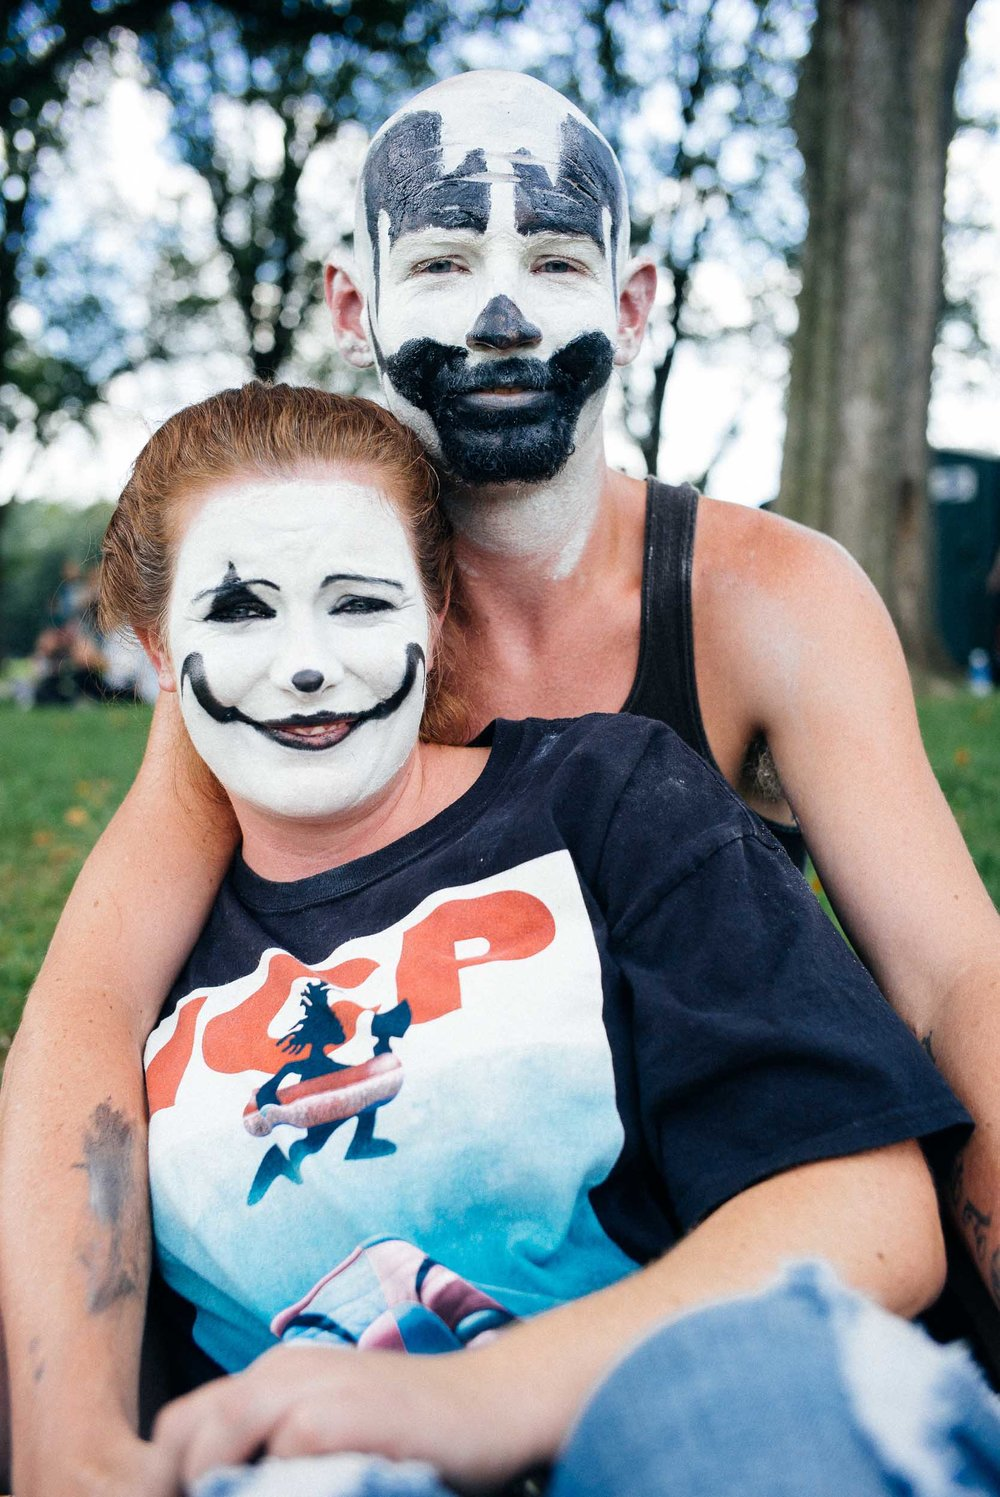 Showing Out: The Juggalo March for Opening Ceremony